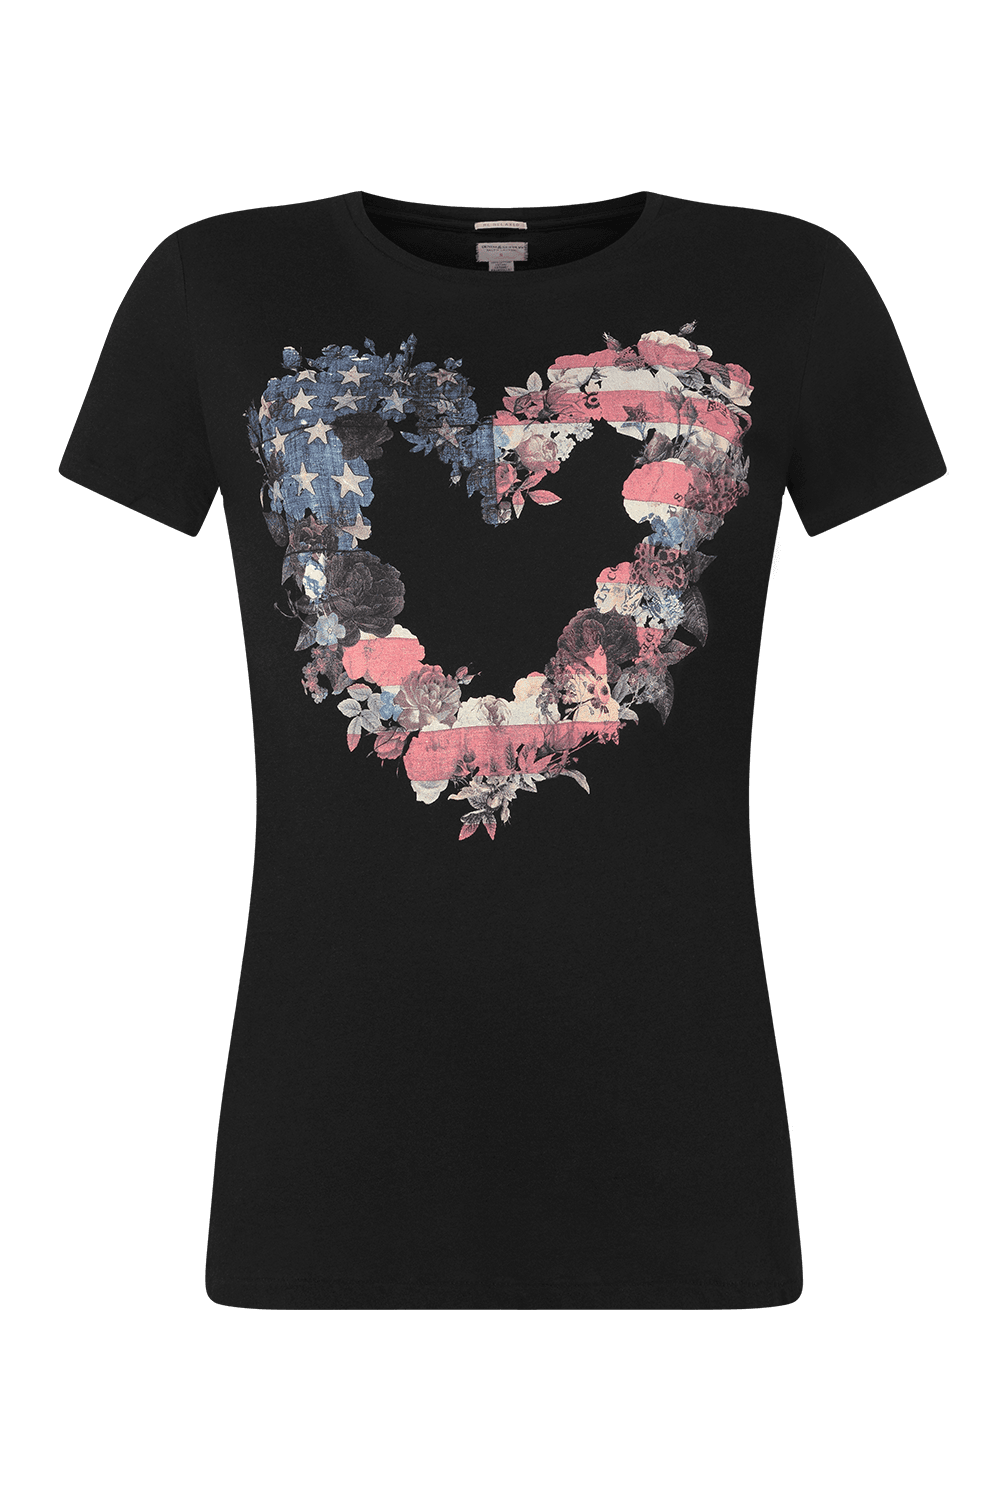 DENIM & SUPPLY T-SHIRT WITH HEART PRINT